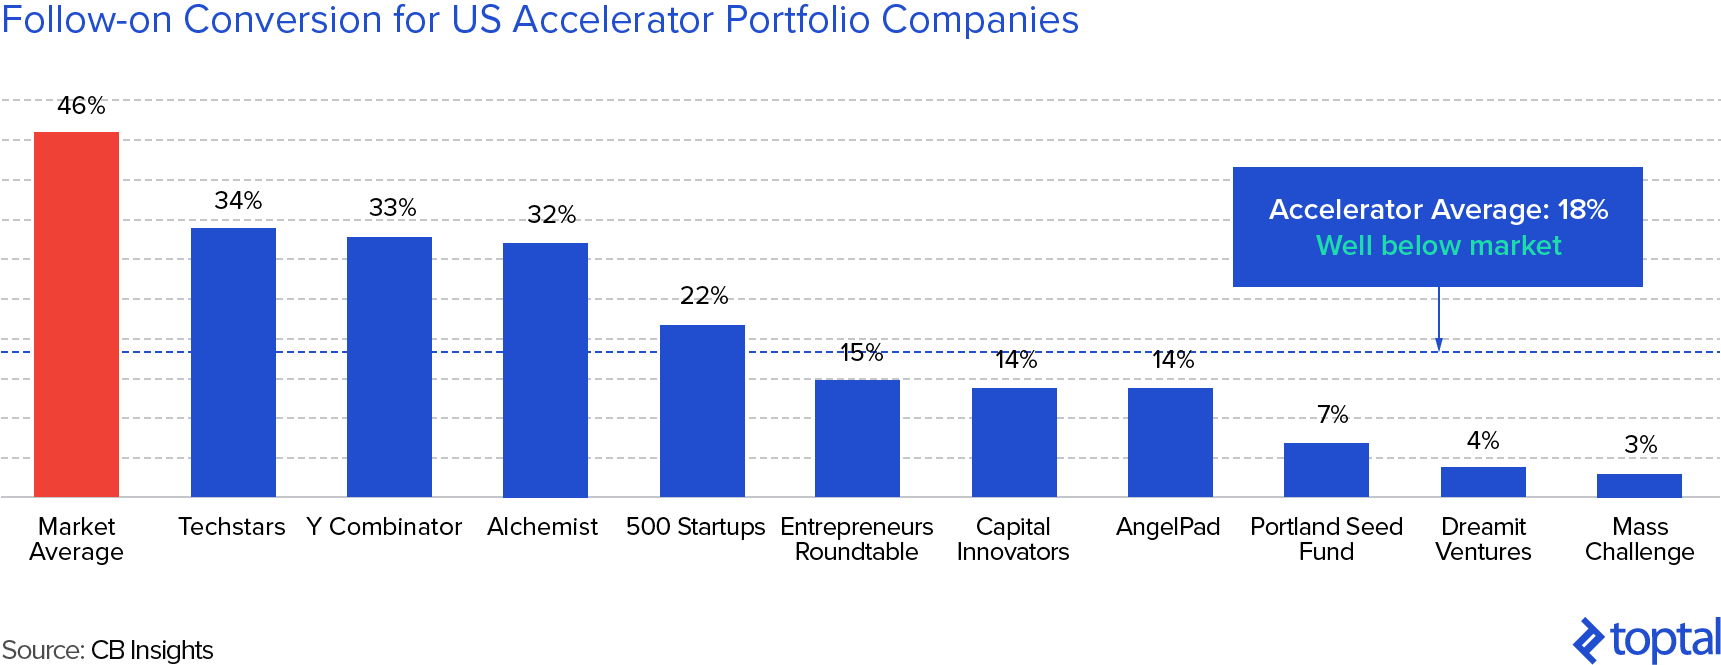 Follow-on Conversion Ratess for US Accelerator Portfolio Companies Are Below Market Averages